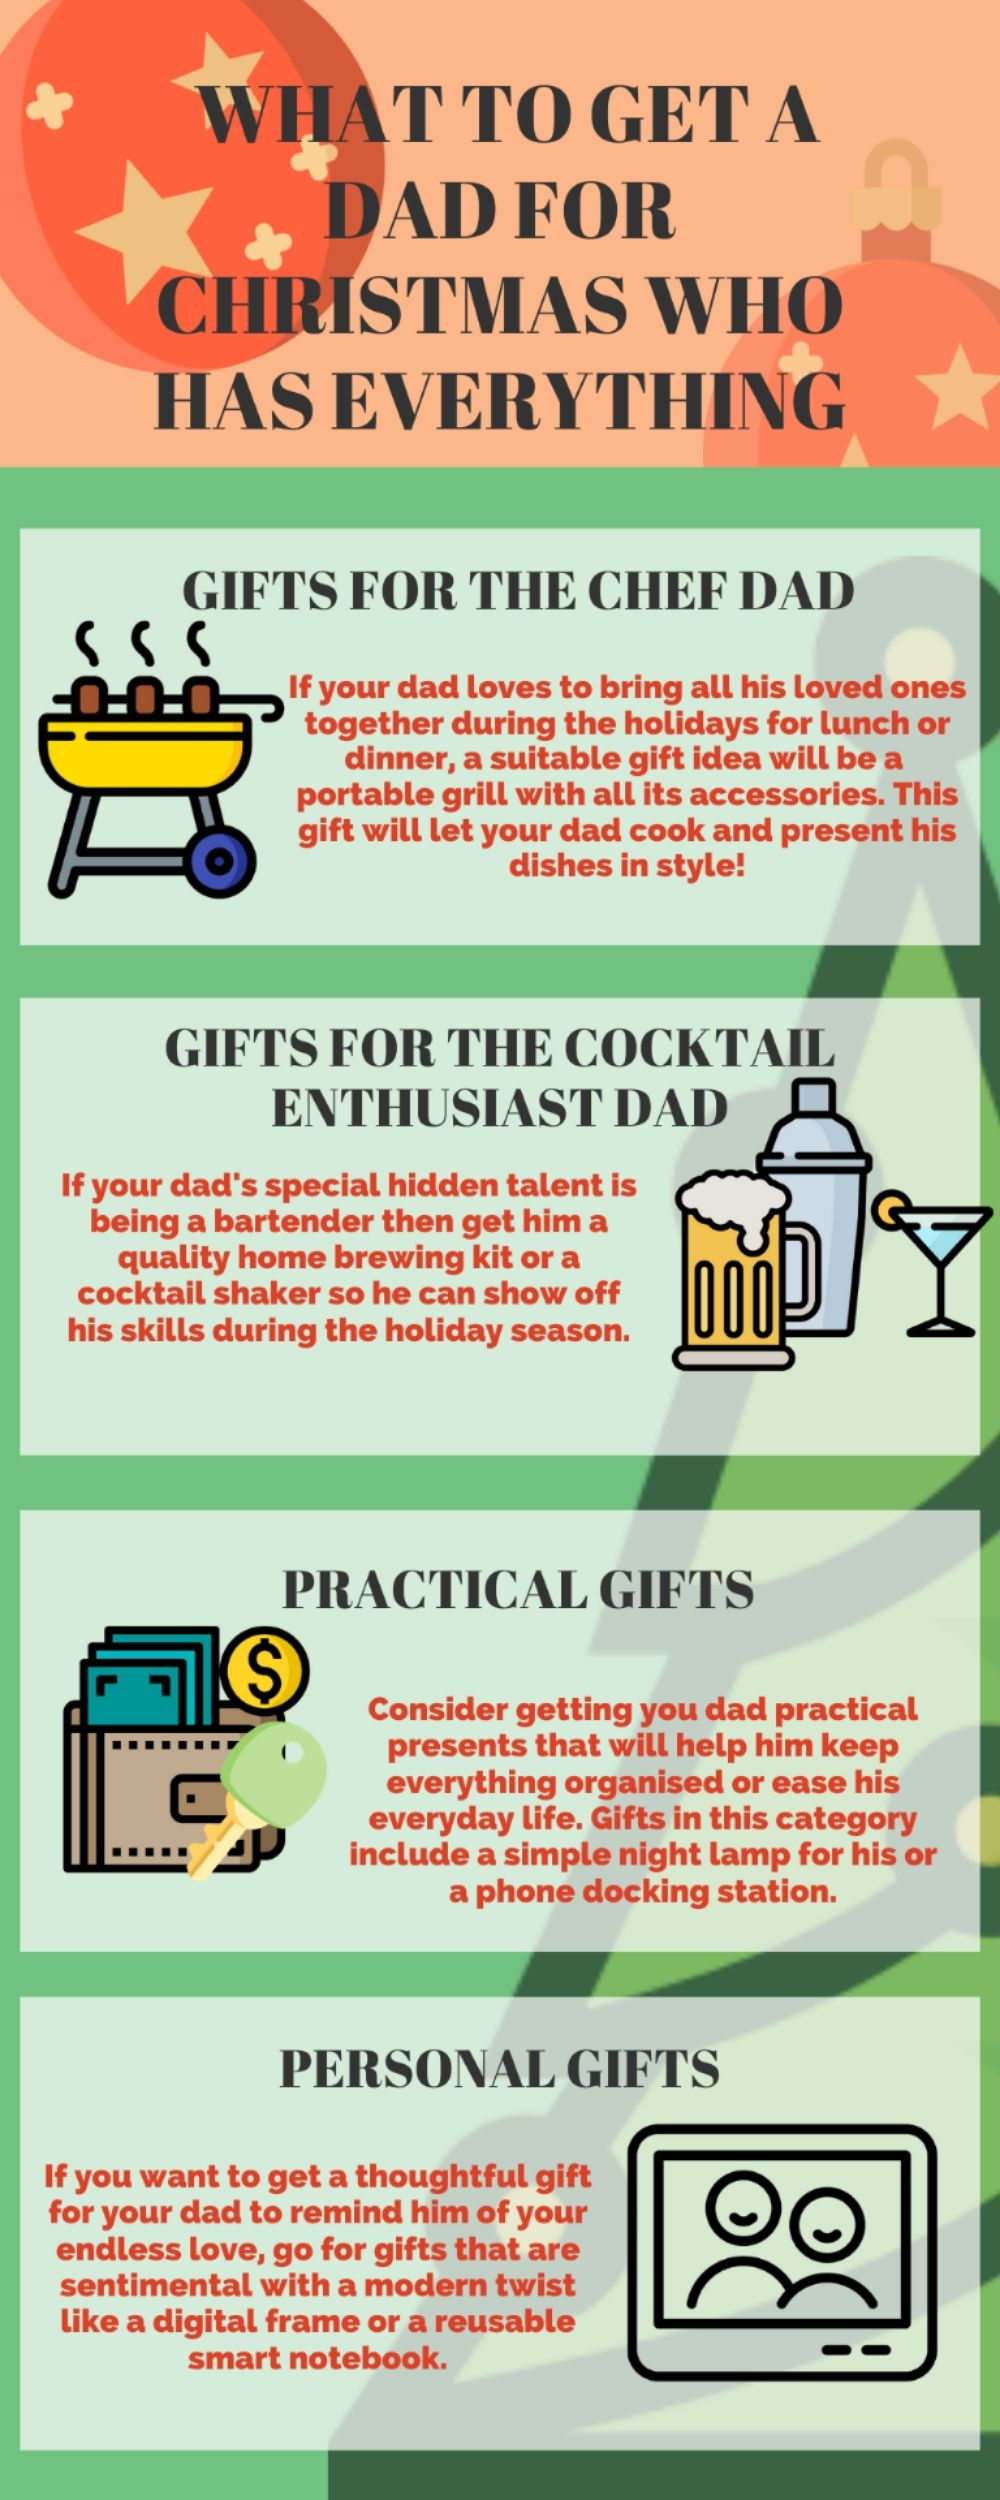 Gifts What to Get a Dad for Christmas Who Has Everything